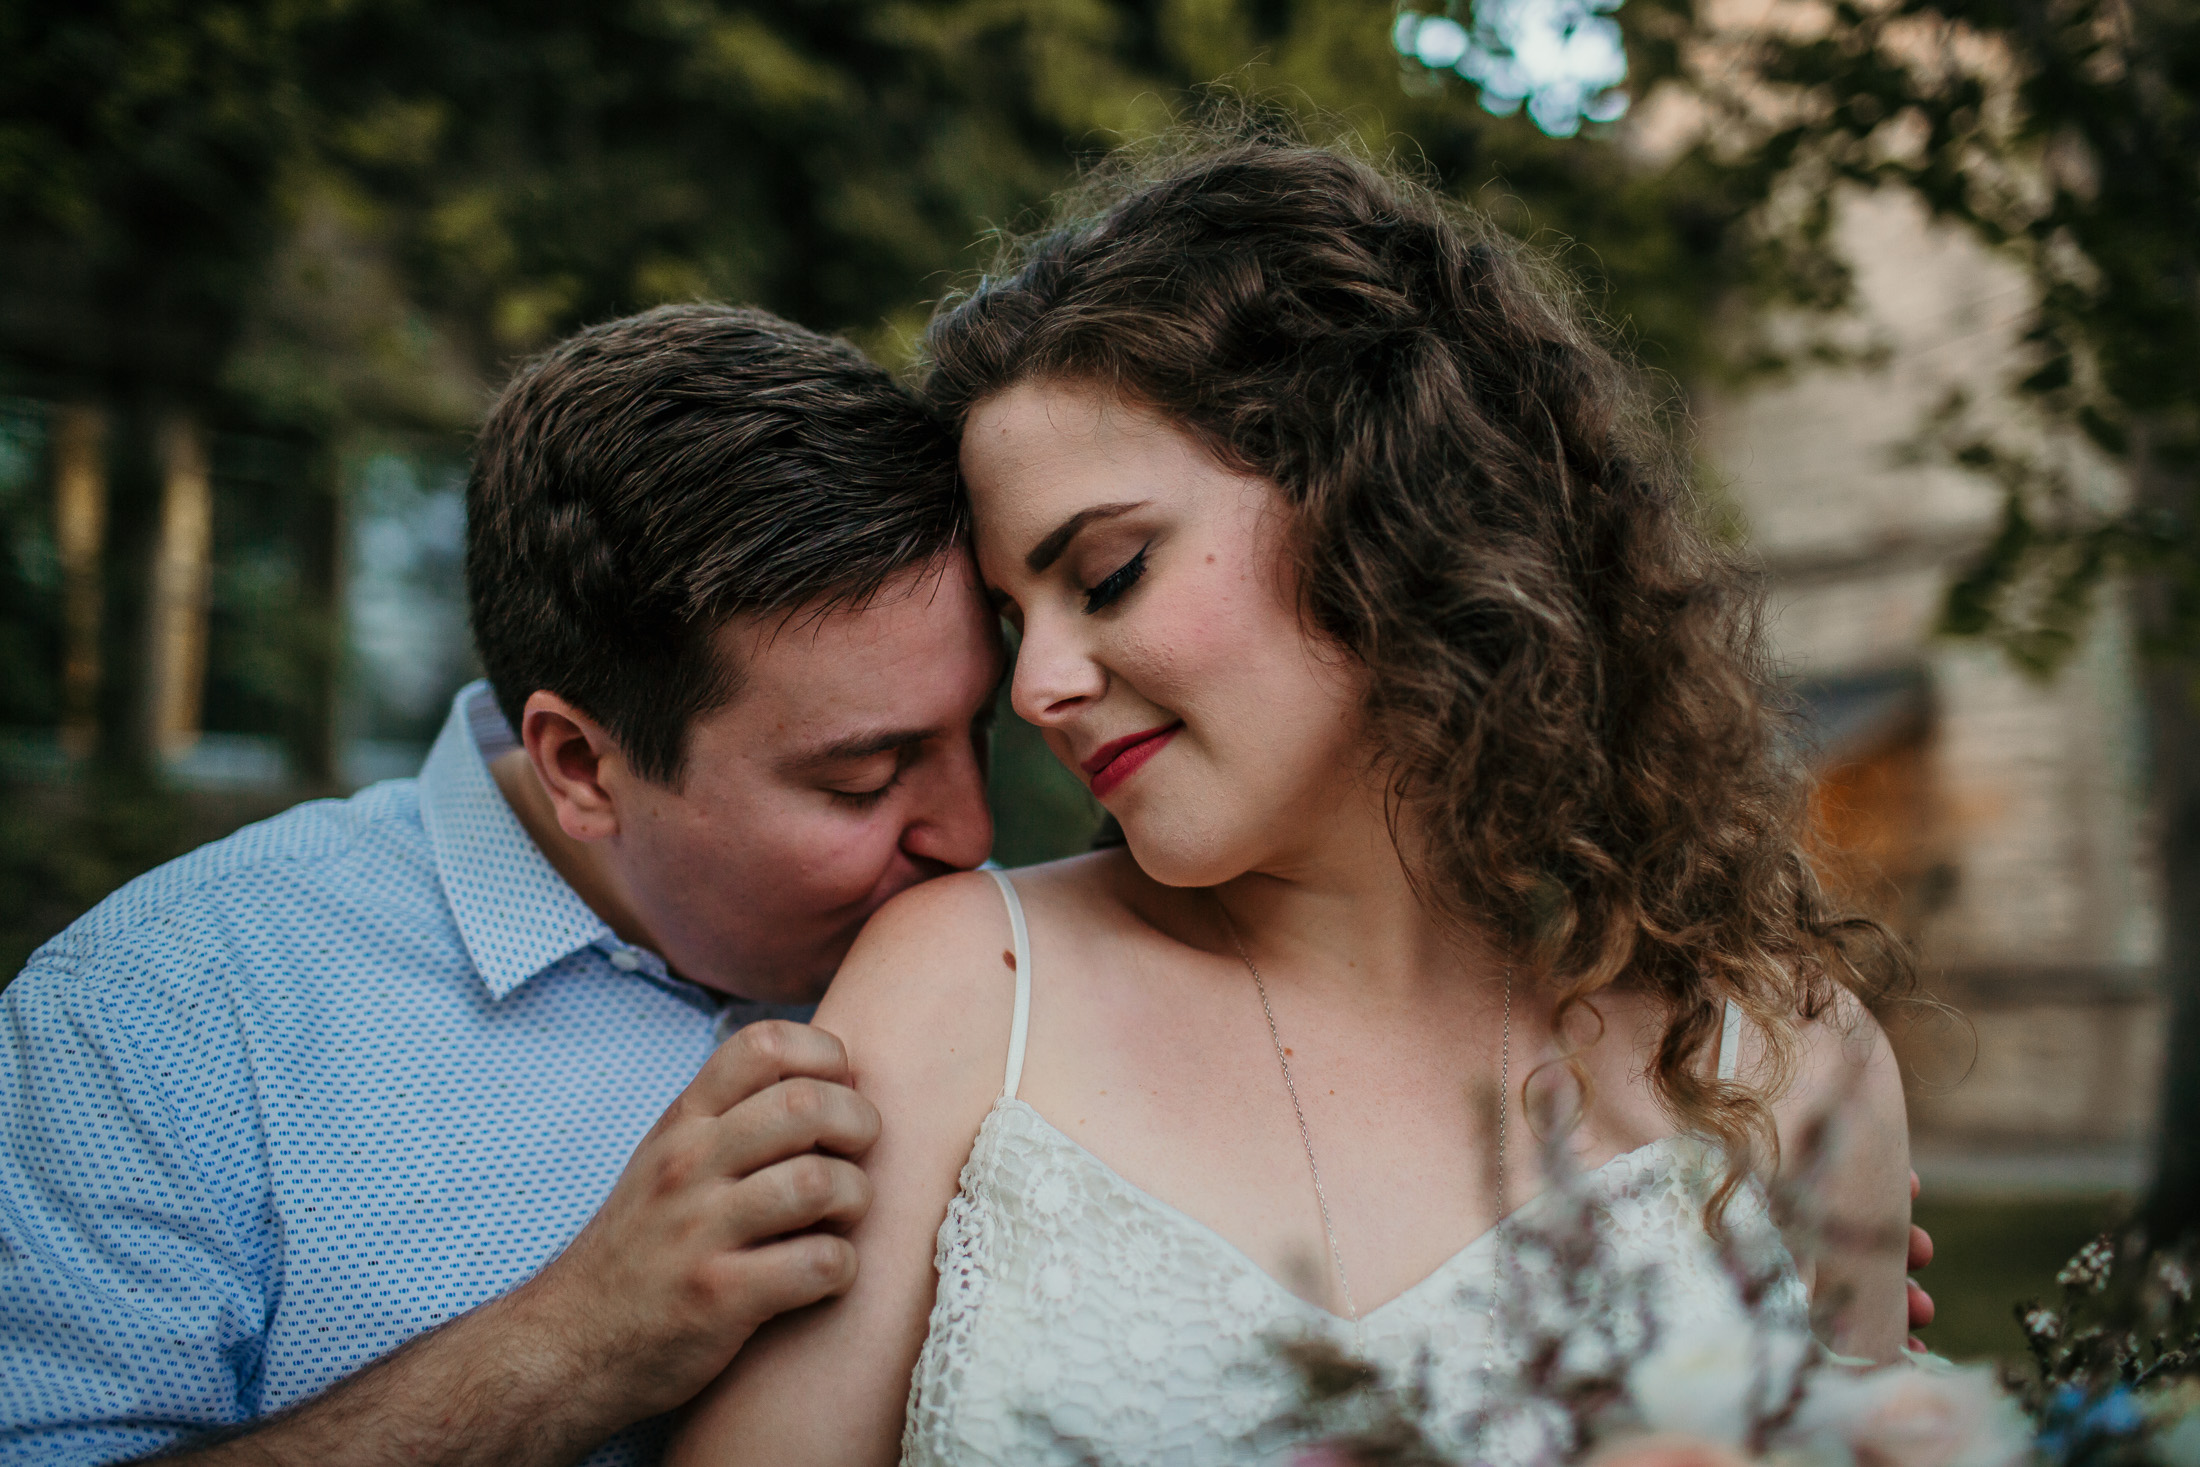 EnsoulEndearmentImagery©SaskatoonWeddingPhotographer-EngagementSession-9928.jpg